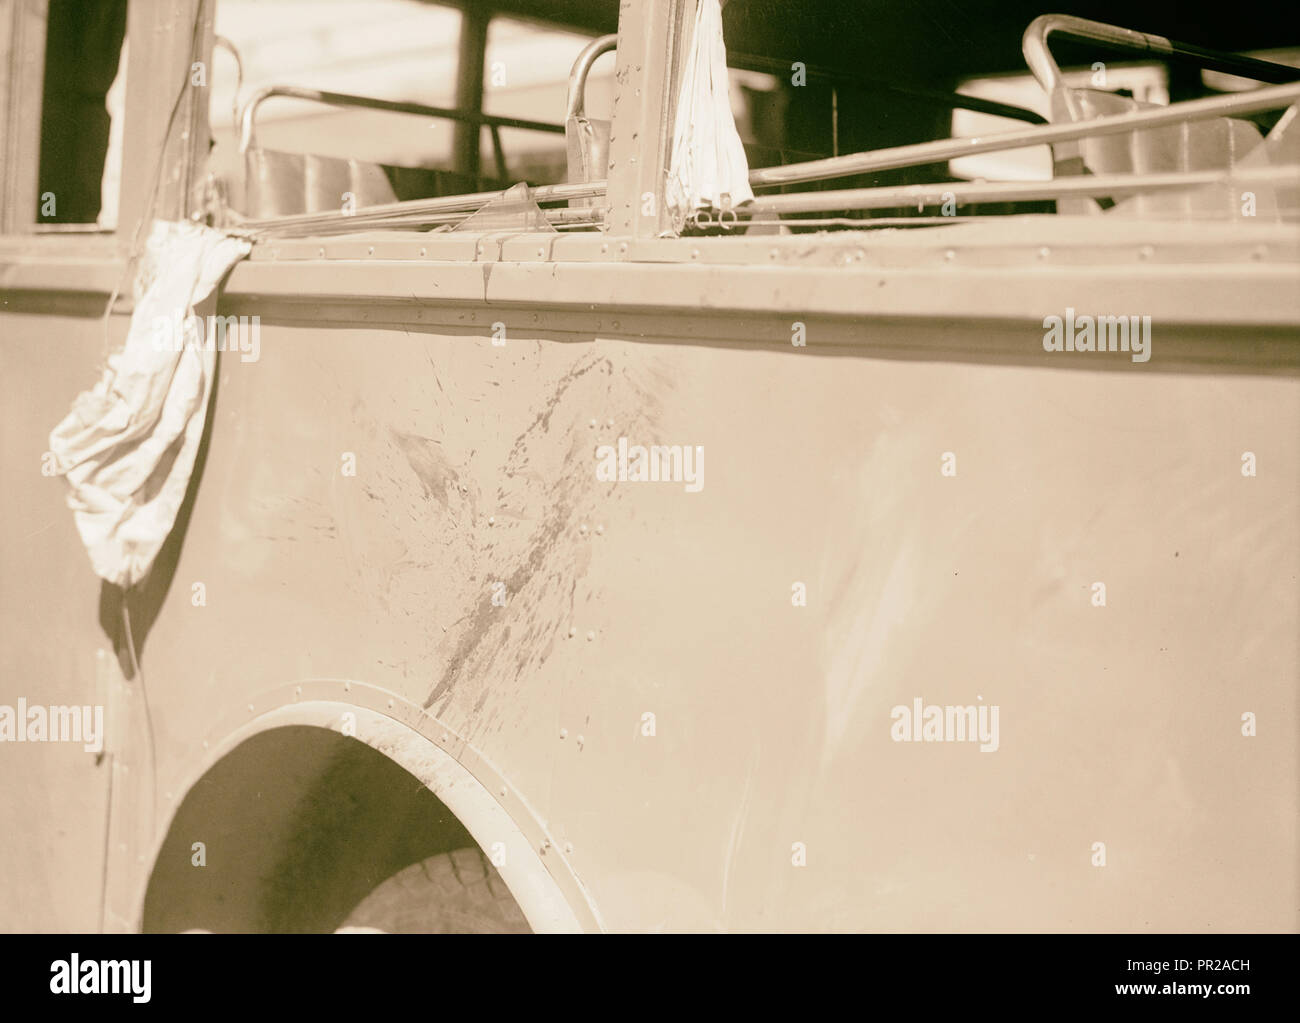 Disturbance. Attack on an Arab bus July 4, 1938. An Arab National blood-stained bus, Middle East, Israel and/or Palestine - Stock Image